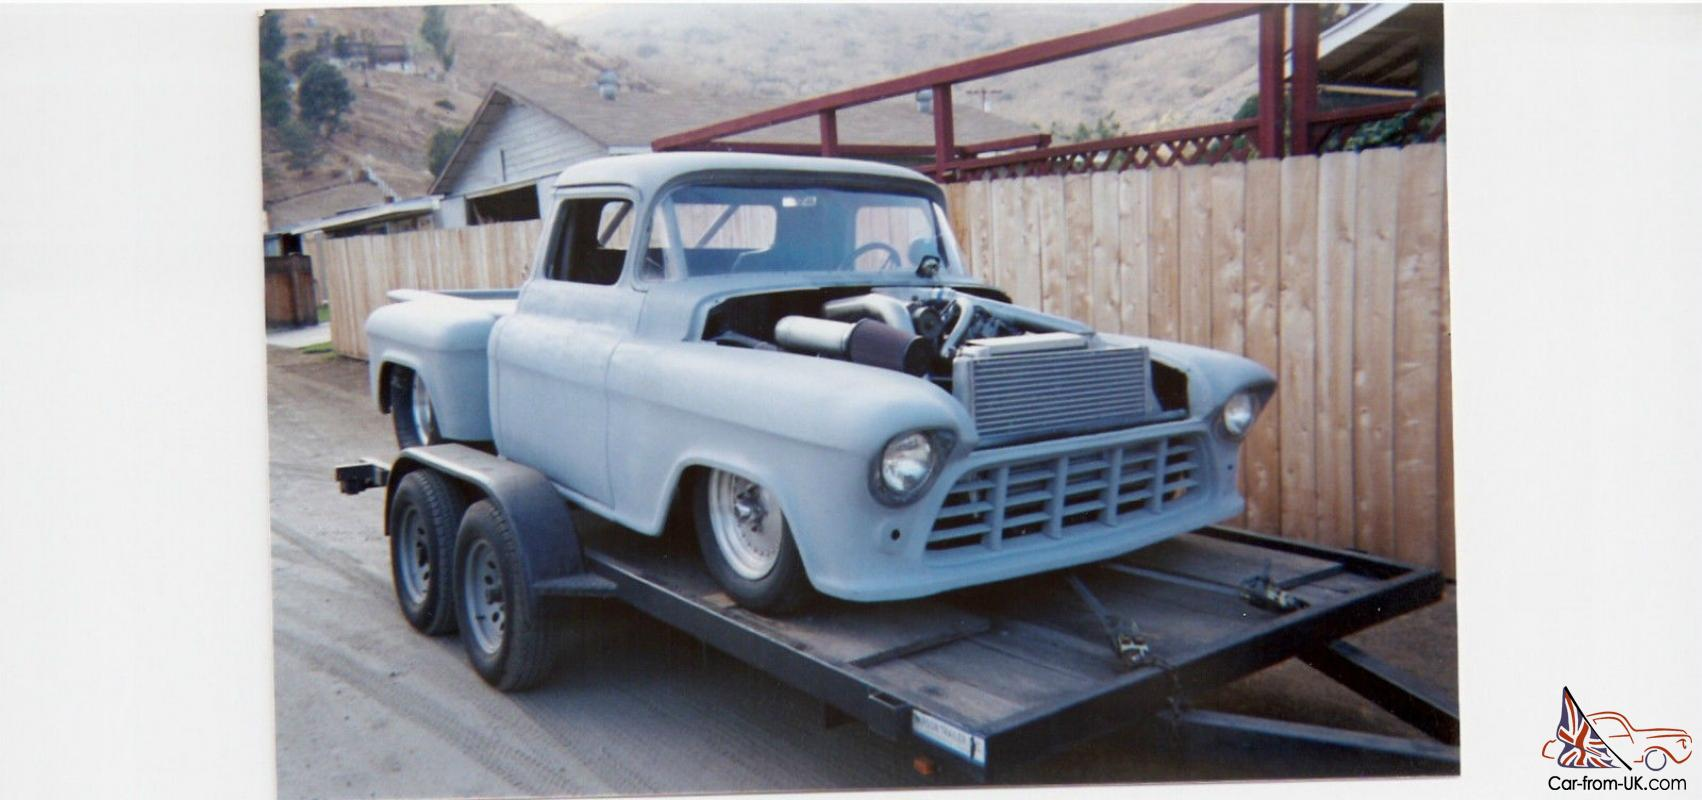 1955 chevrolet pro street truck youtube - 1955 Chevy Truck Project Pro Street Chopped Top 454 Turbo 400 Trans 4 Link Rear